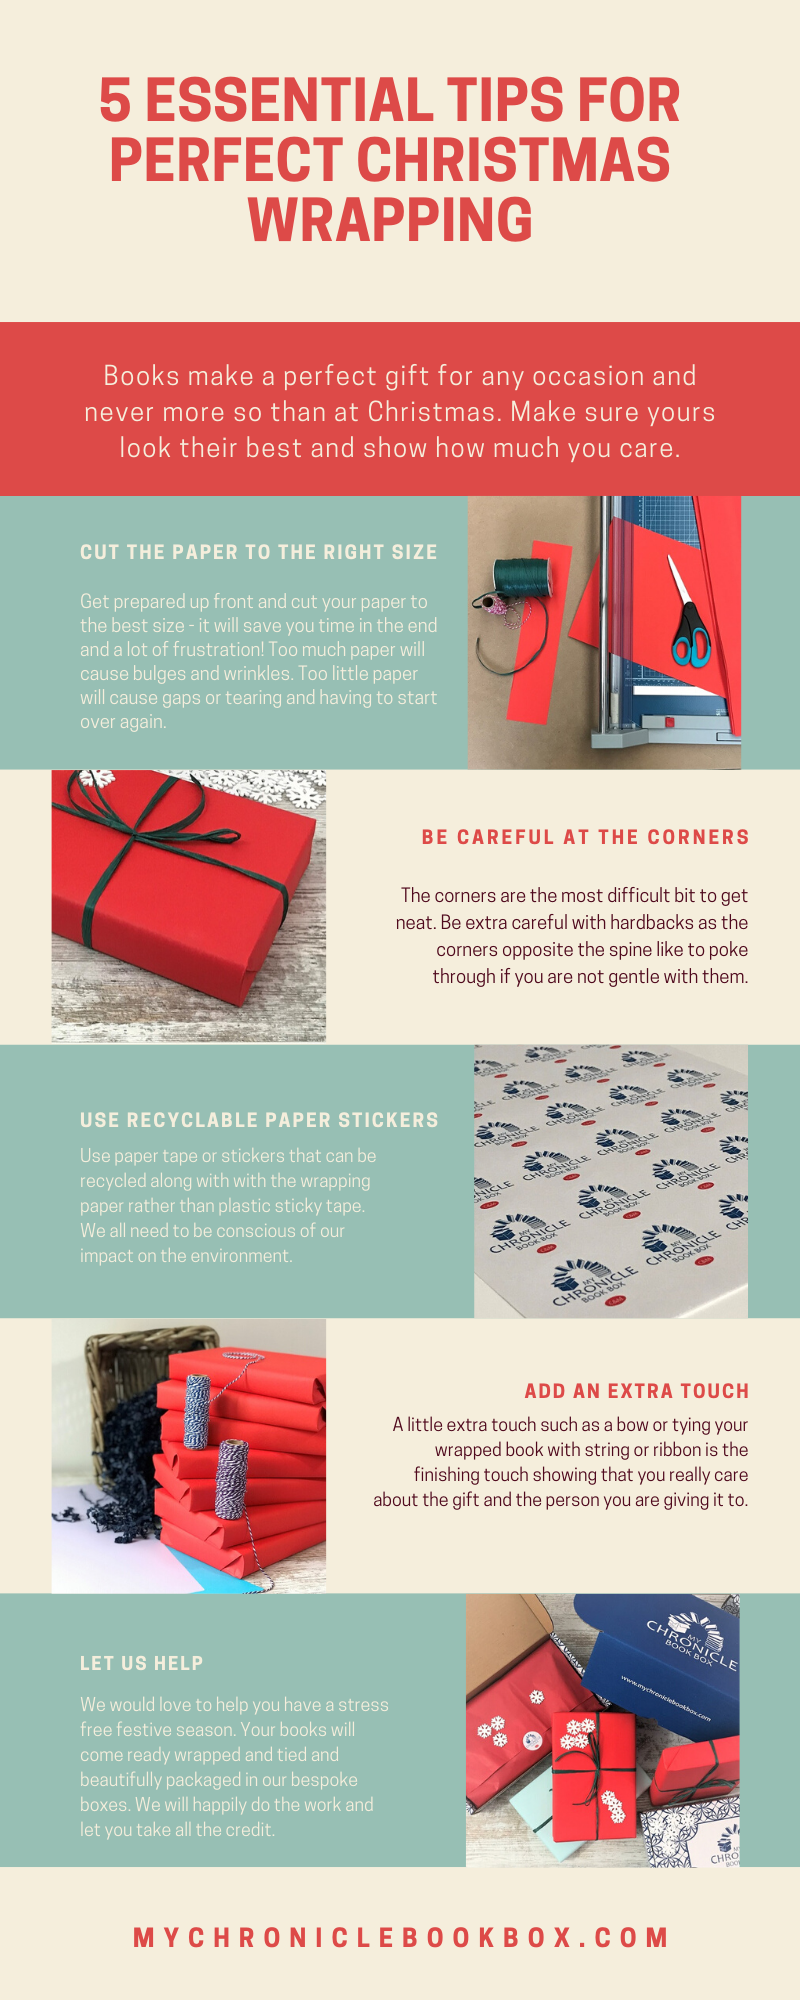 5-top-tips-for-perfect-christmas-wrapping